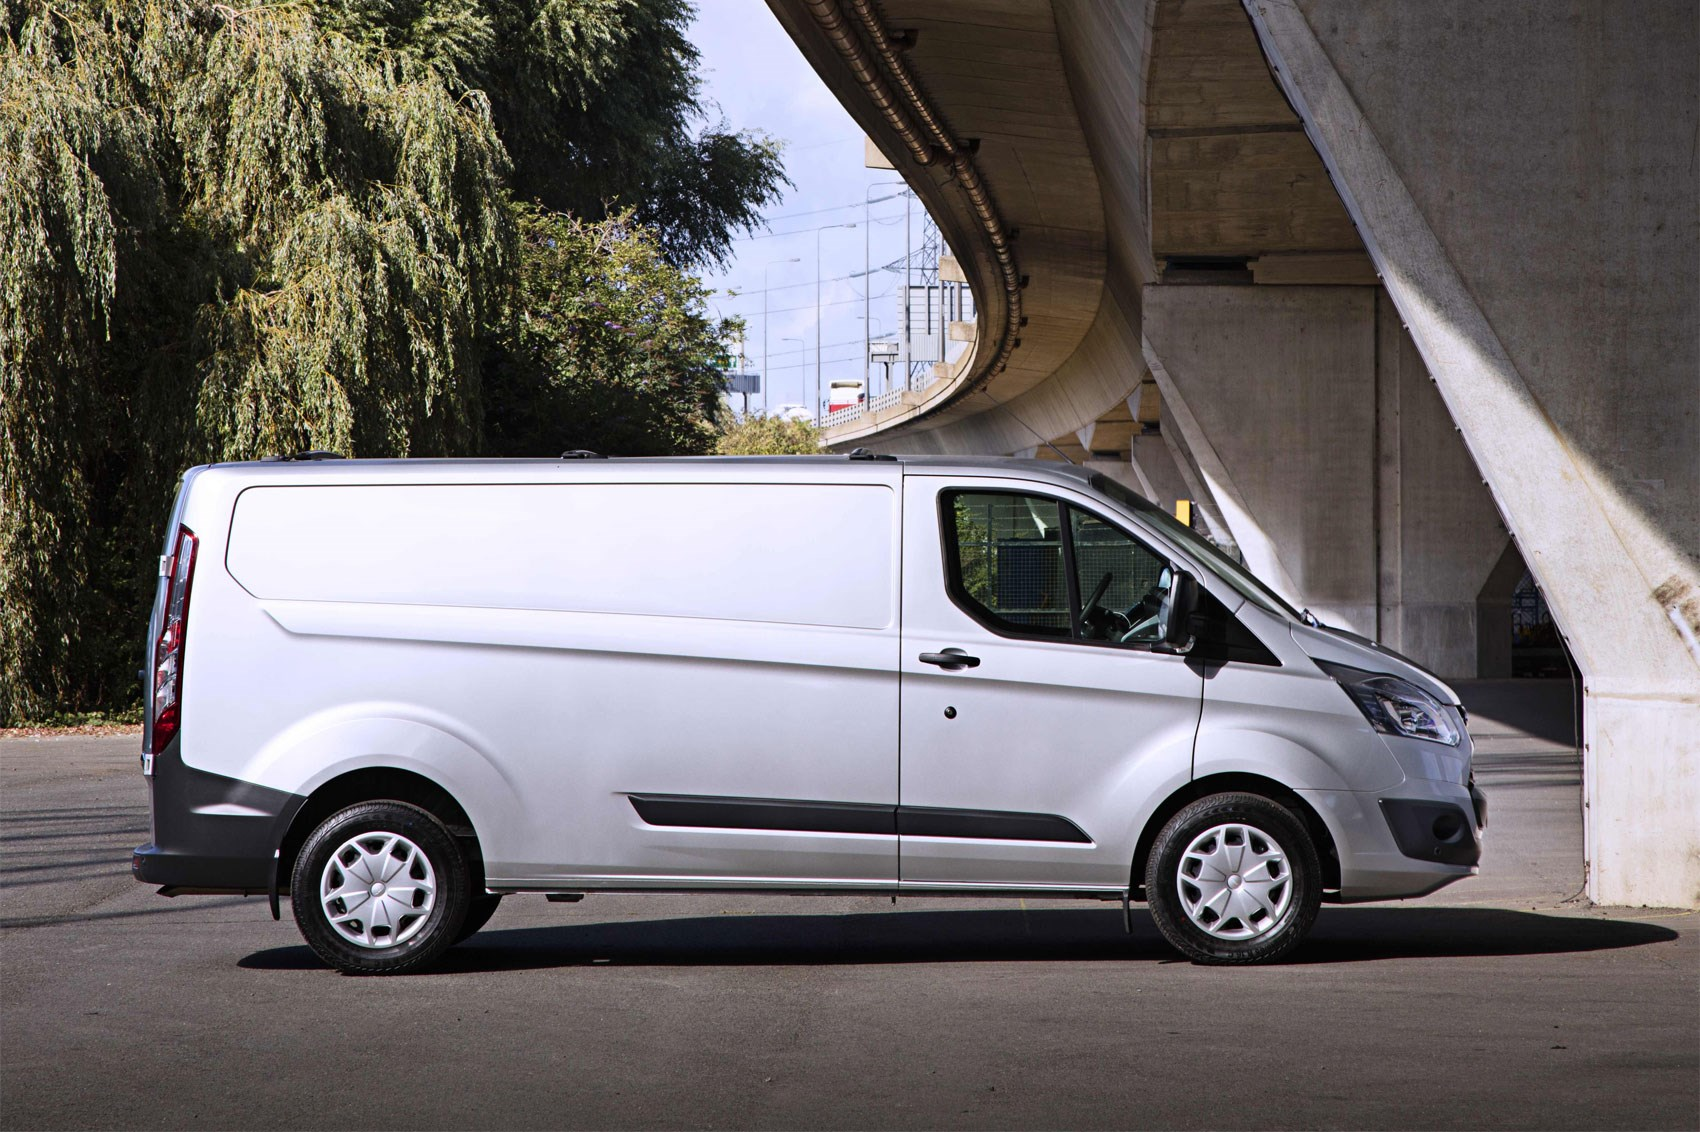 Ford Transit security update announced